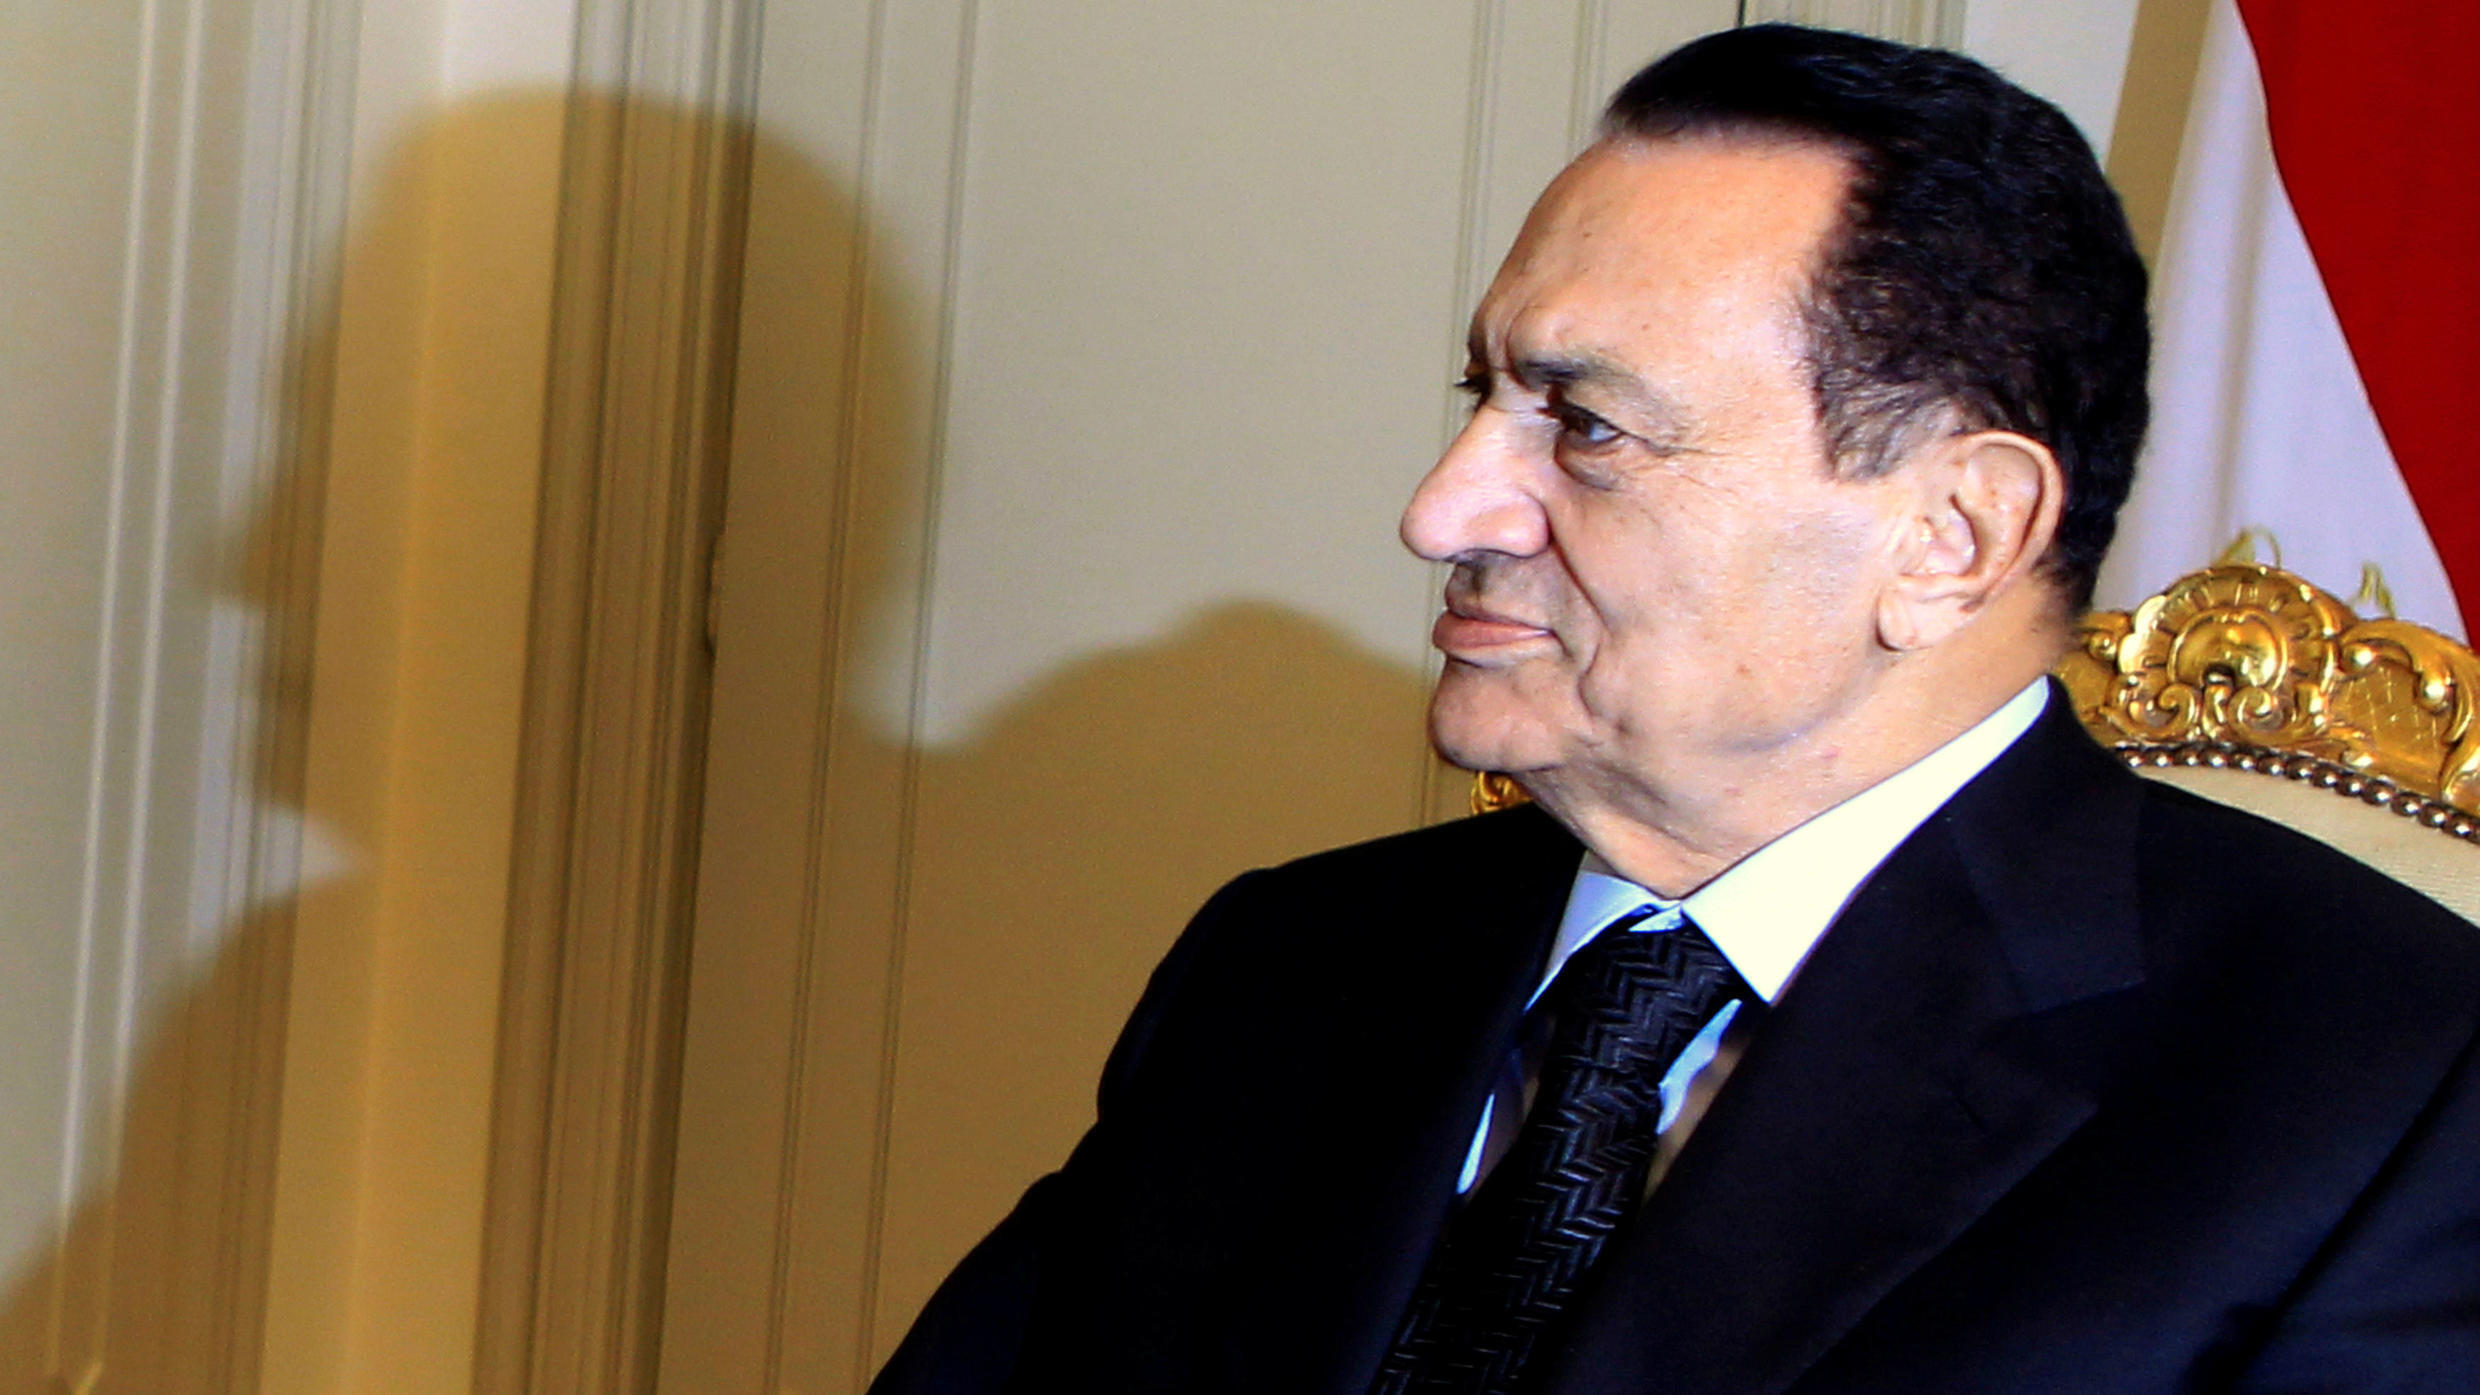 Hosni Mubarak, who died this year aged 91, was a president of Egypt for three decades.